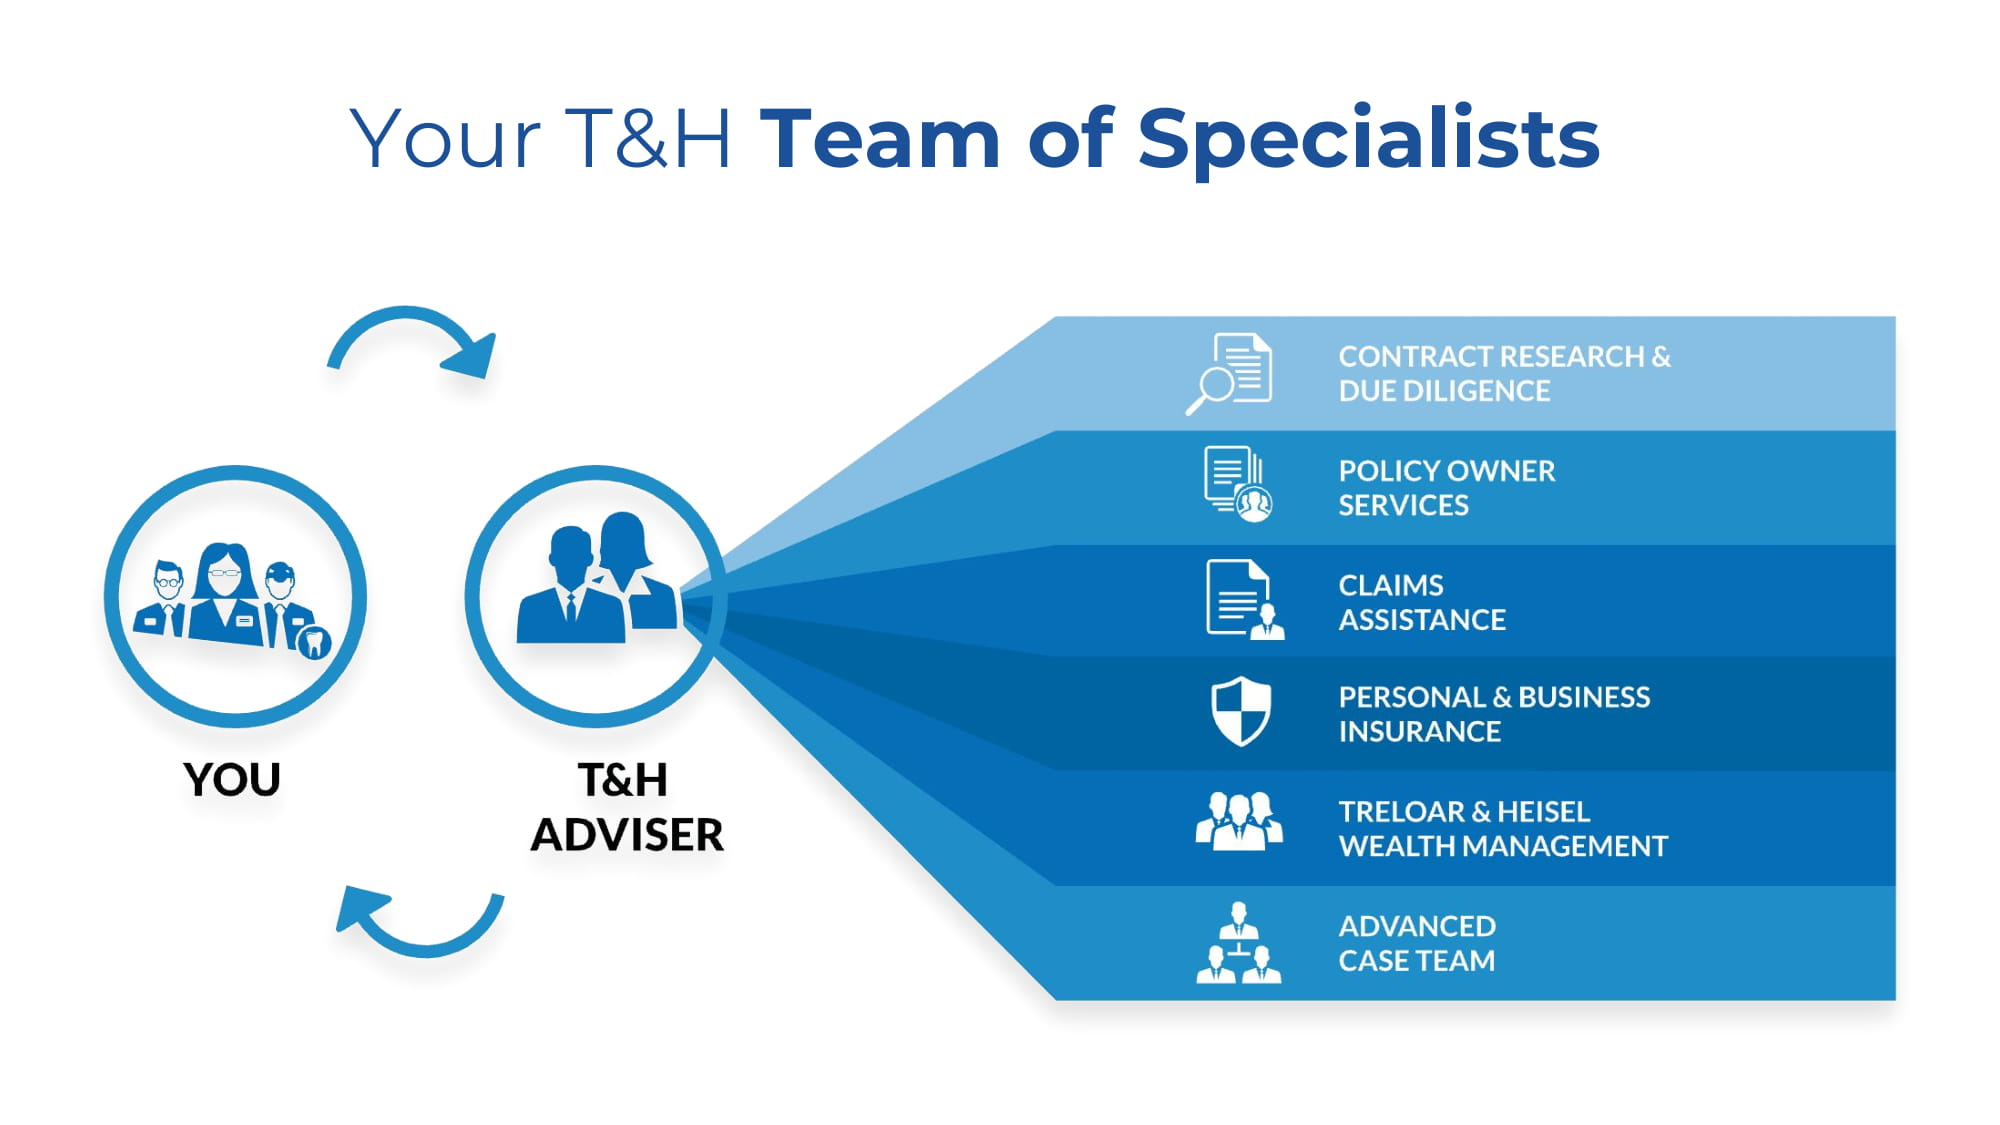 Treloar & Heisel Team of Specialists